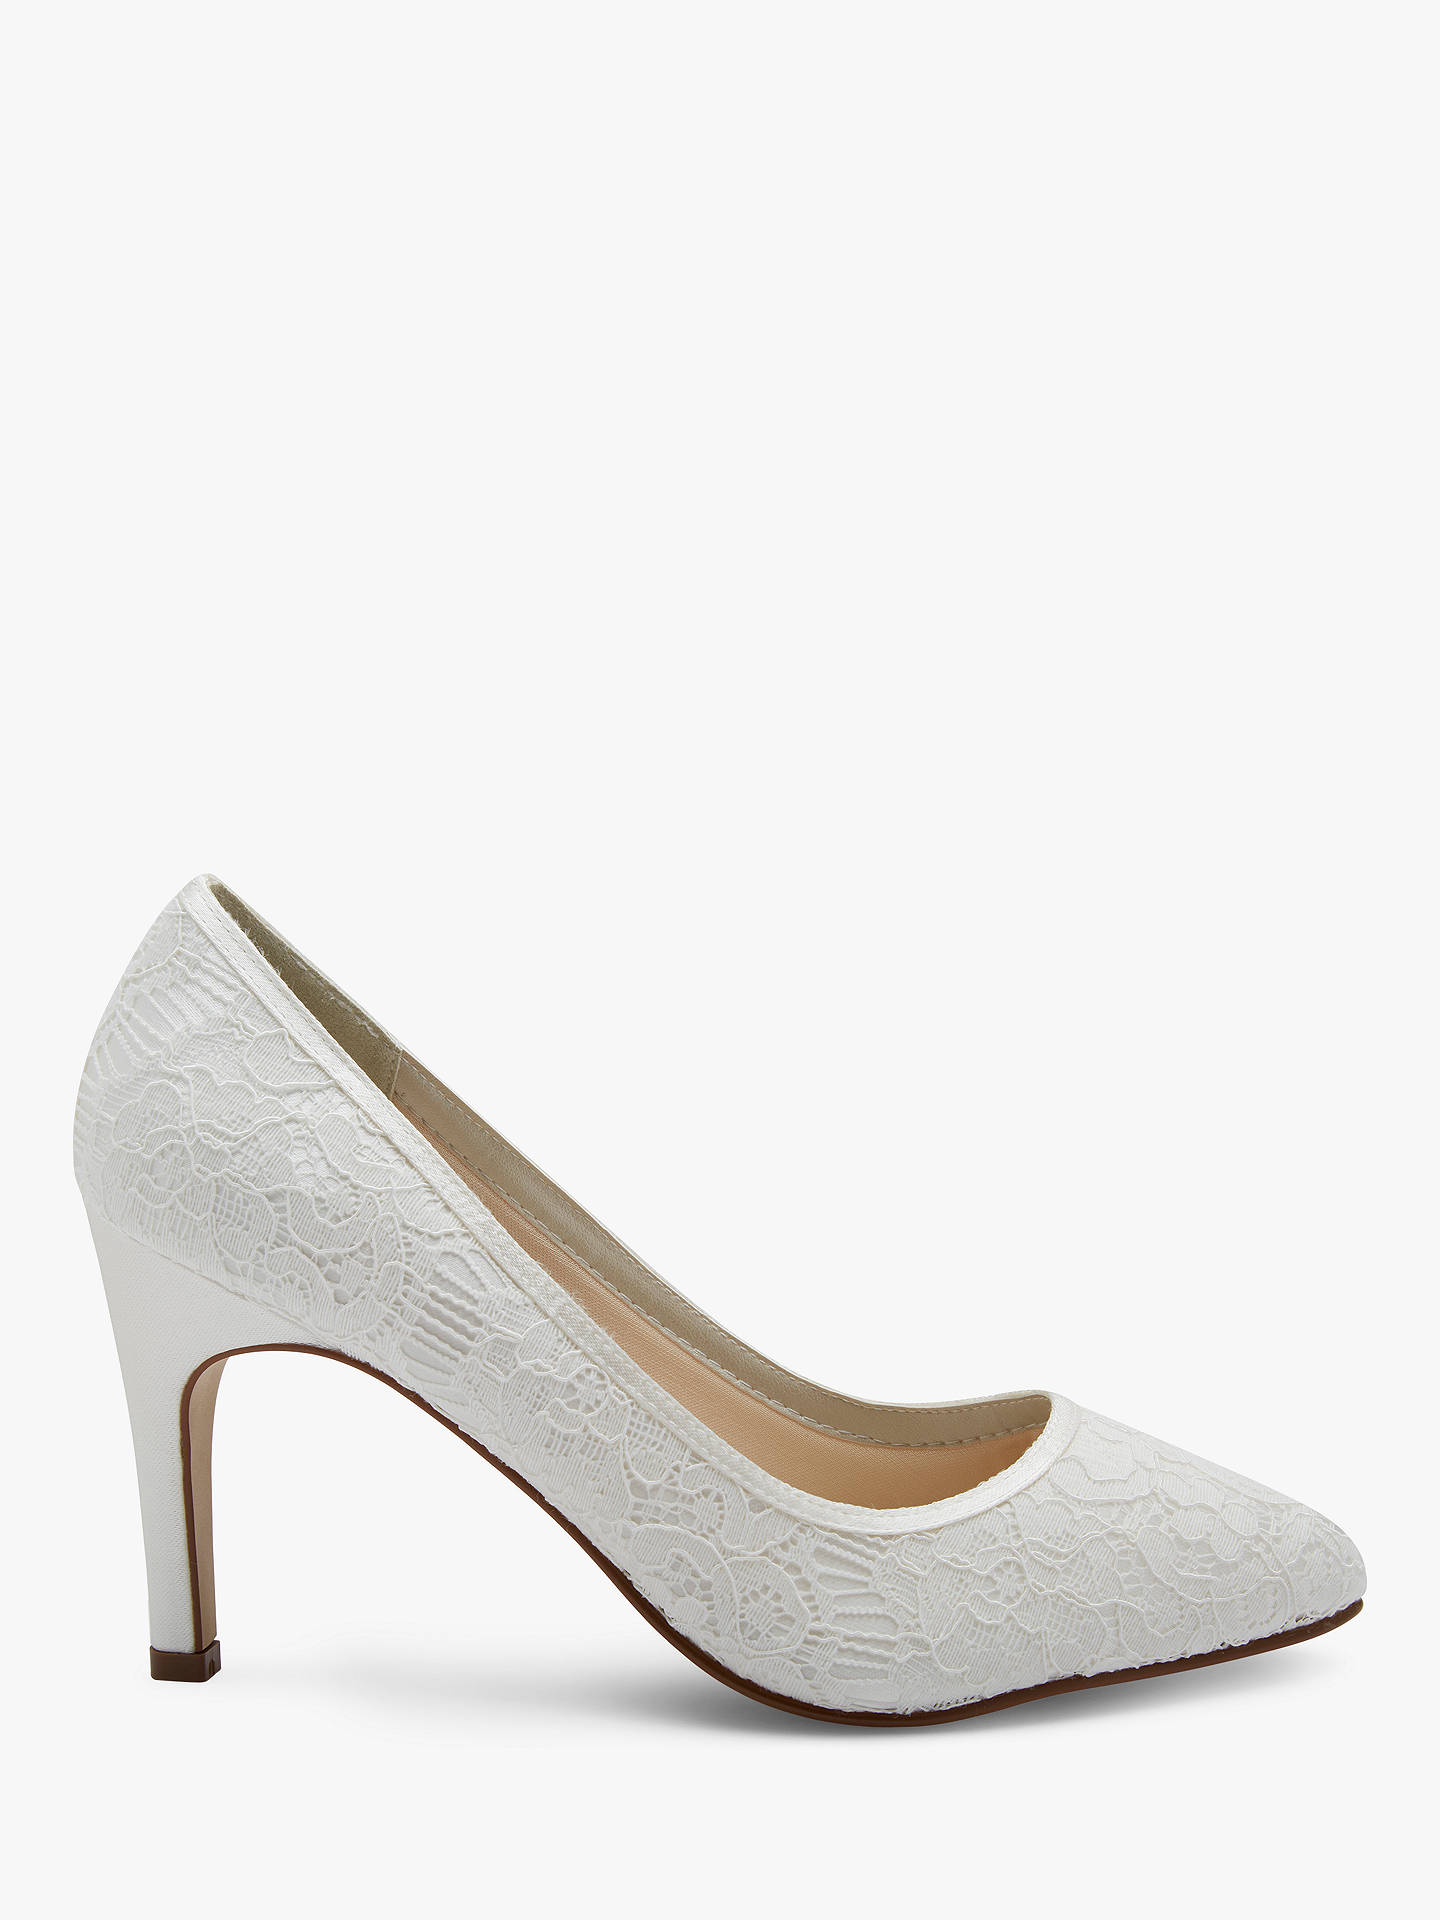 Rainbow Club Alexis Pointed Toe Court Shoes Ivory At John Lewis